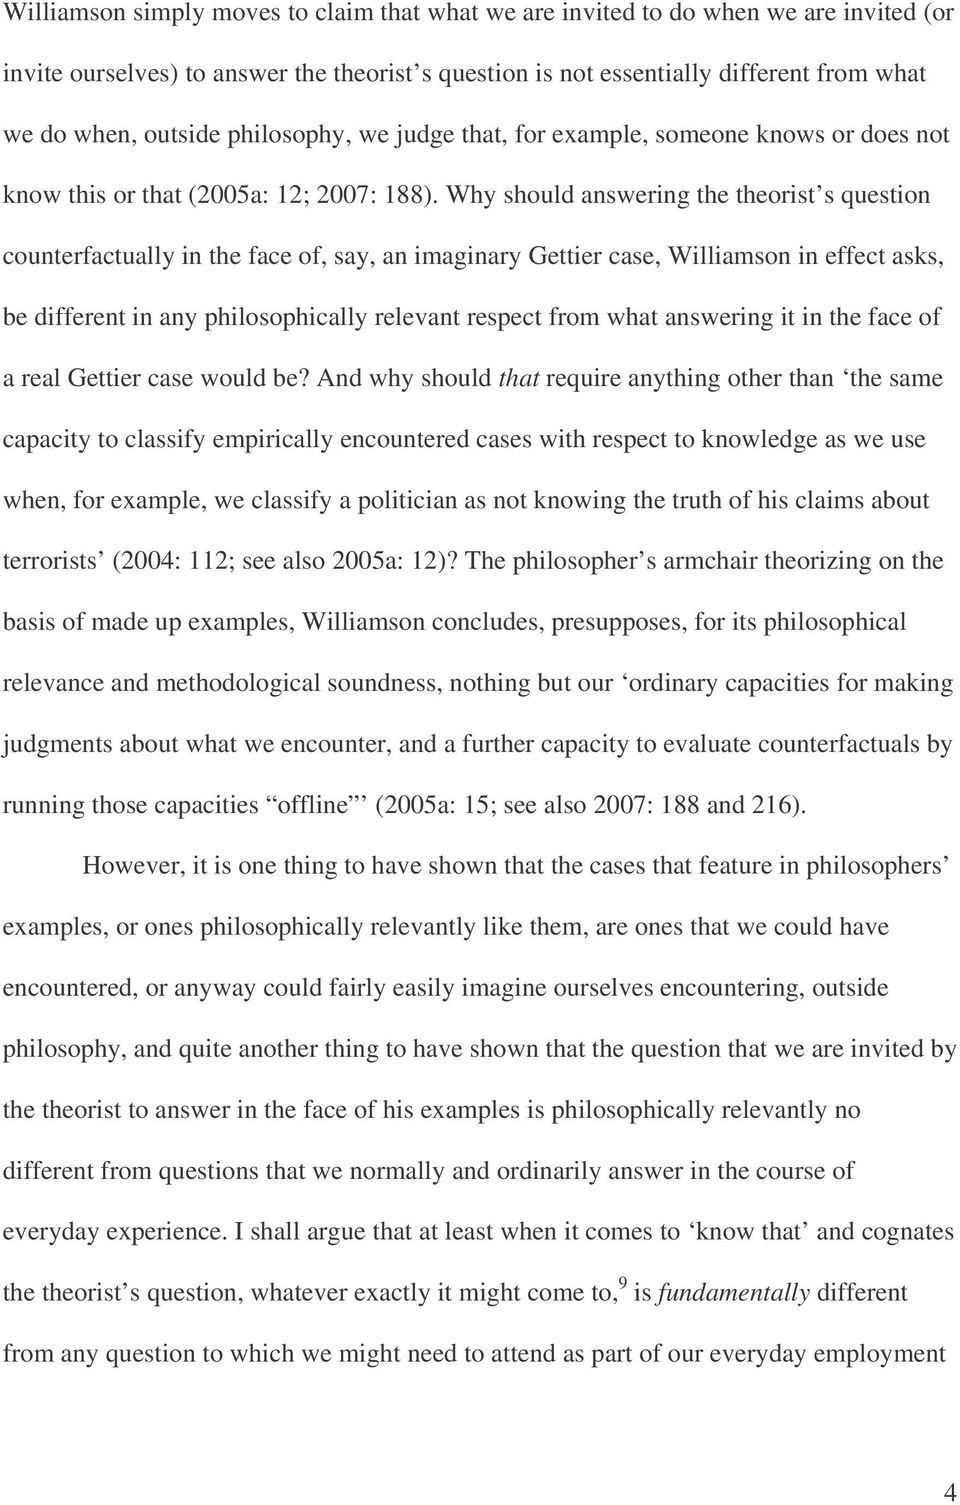 Why should answering the theorist s question counterfactually in the face of, say, an imaginary Gettier case, Williamson in effect asks, be different in any philosophically relevant respect from what